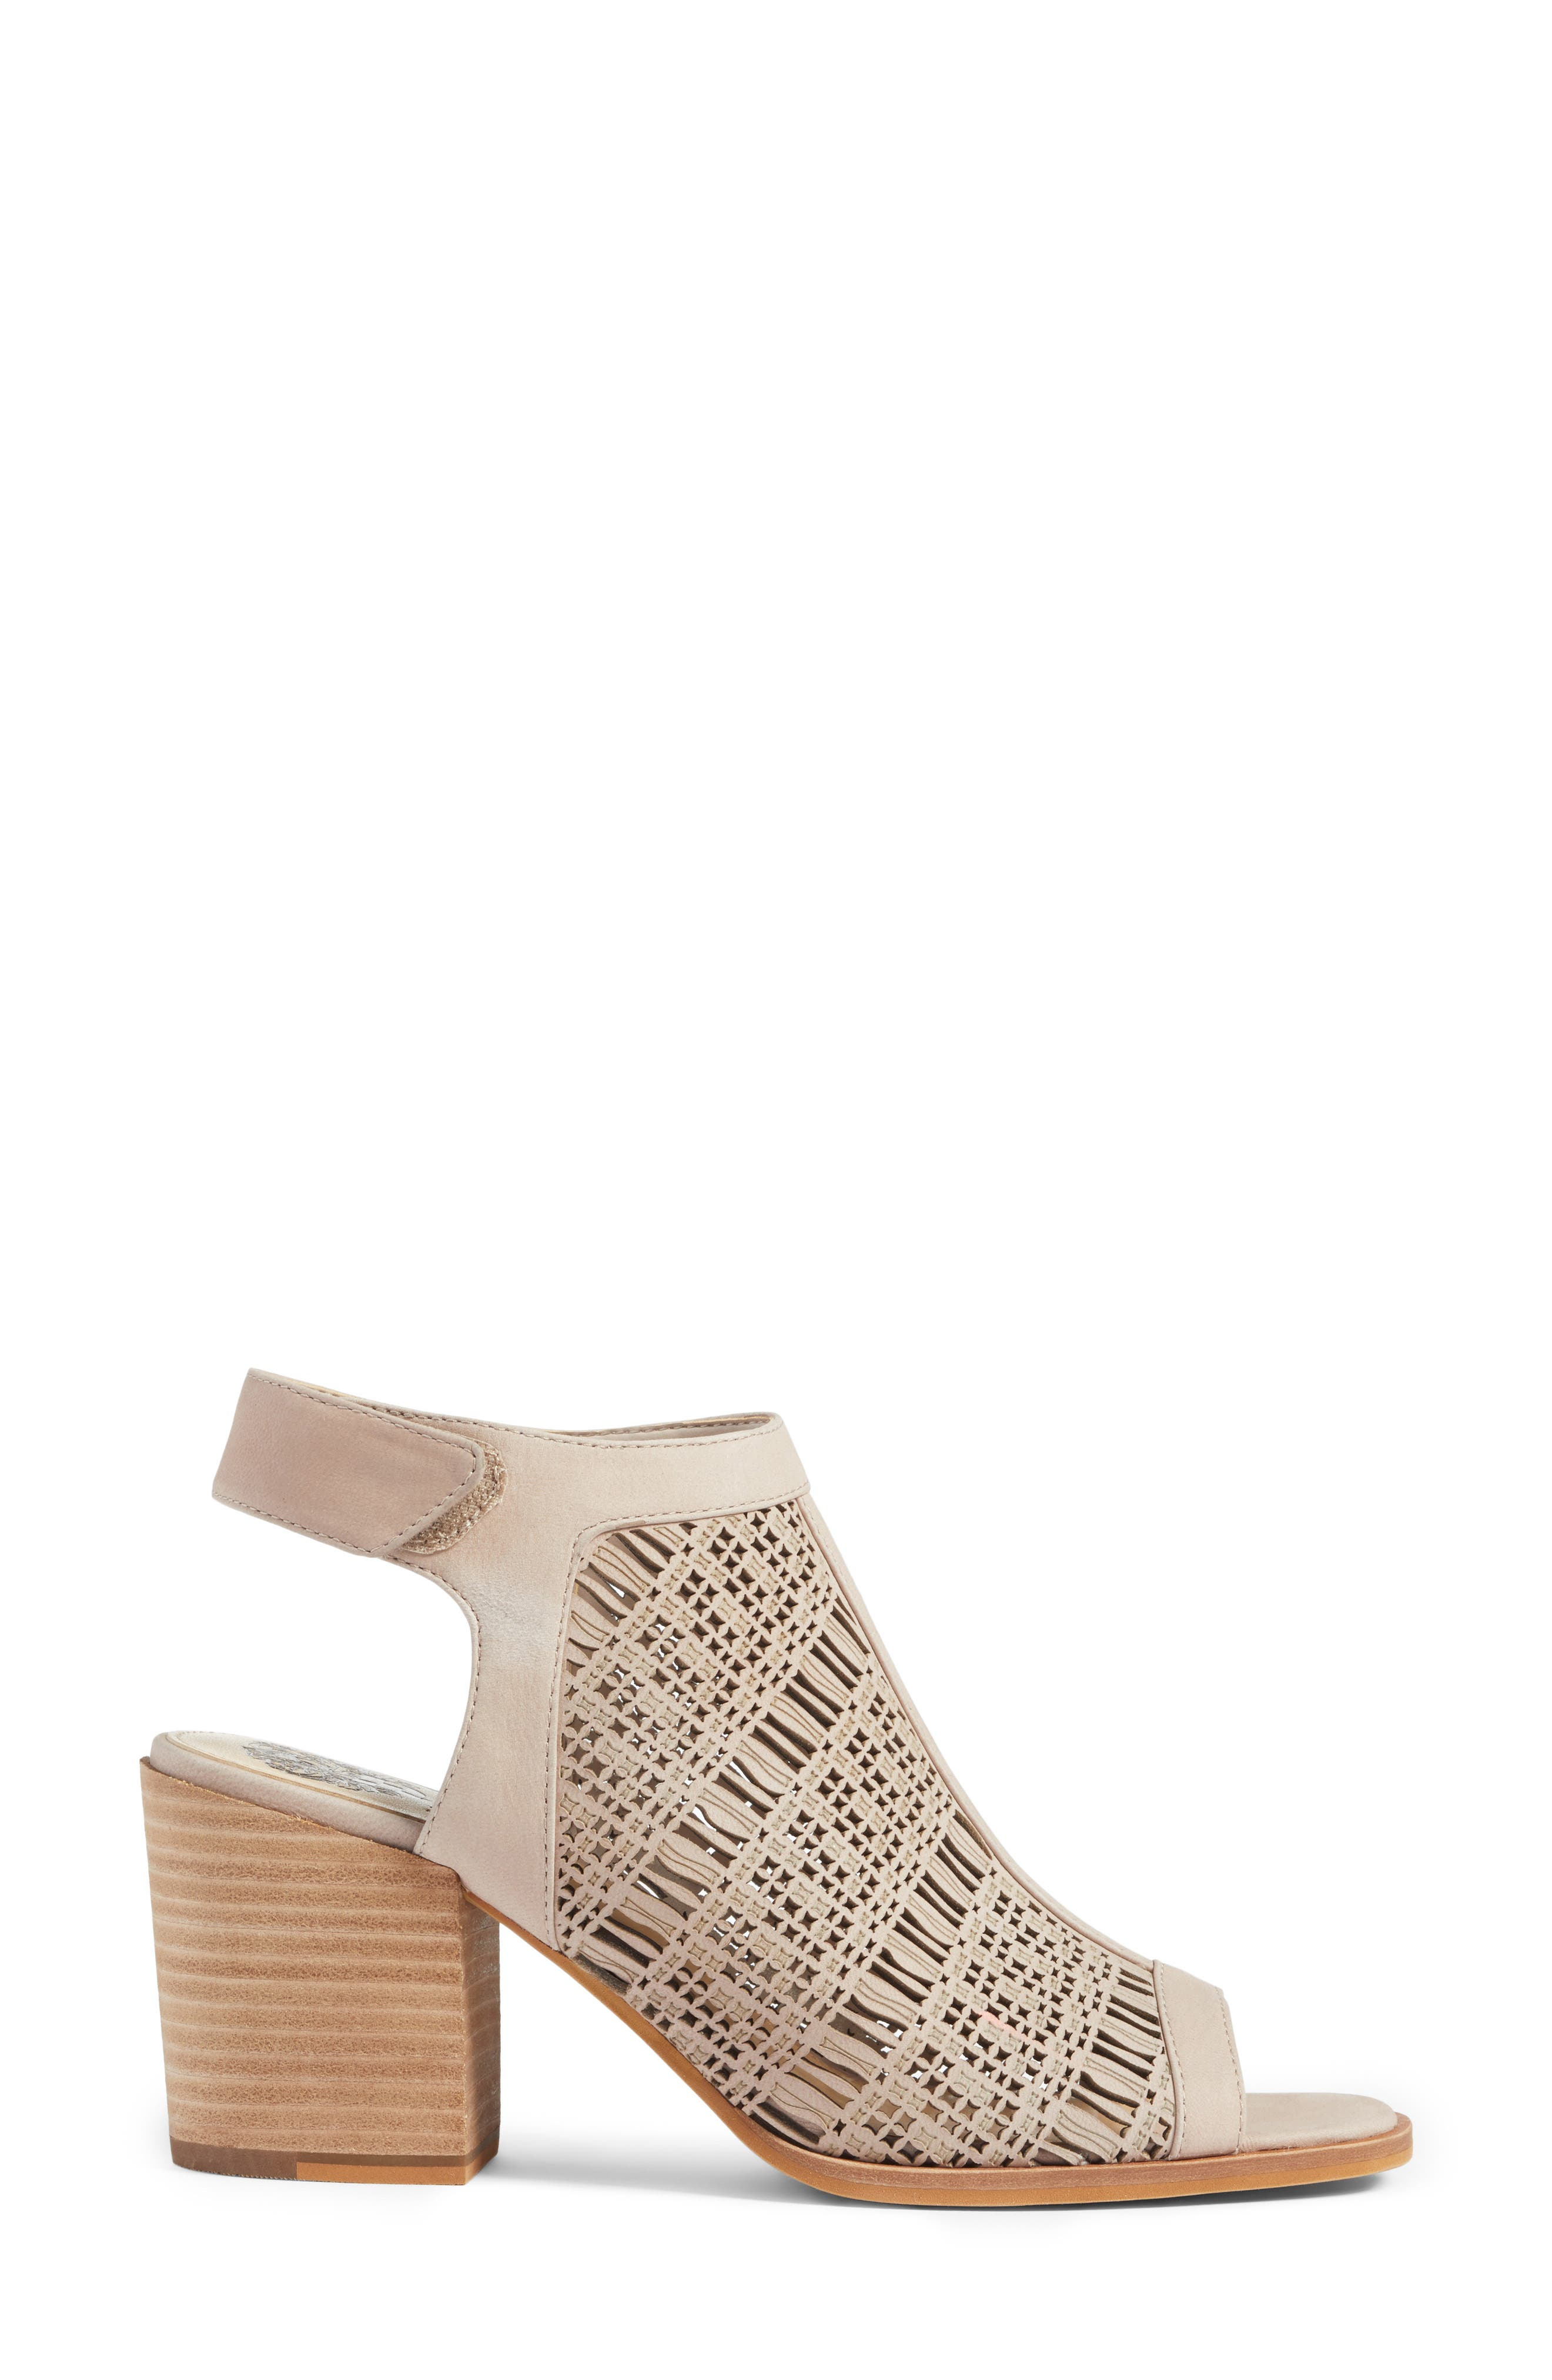 Keannie Sandal,                             Alternate thumbnail 3, color,                             Tipsy Taupe Nubuck Leather